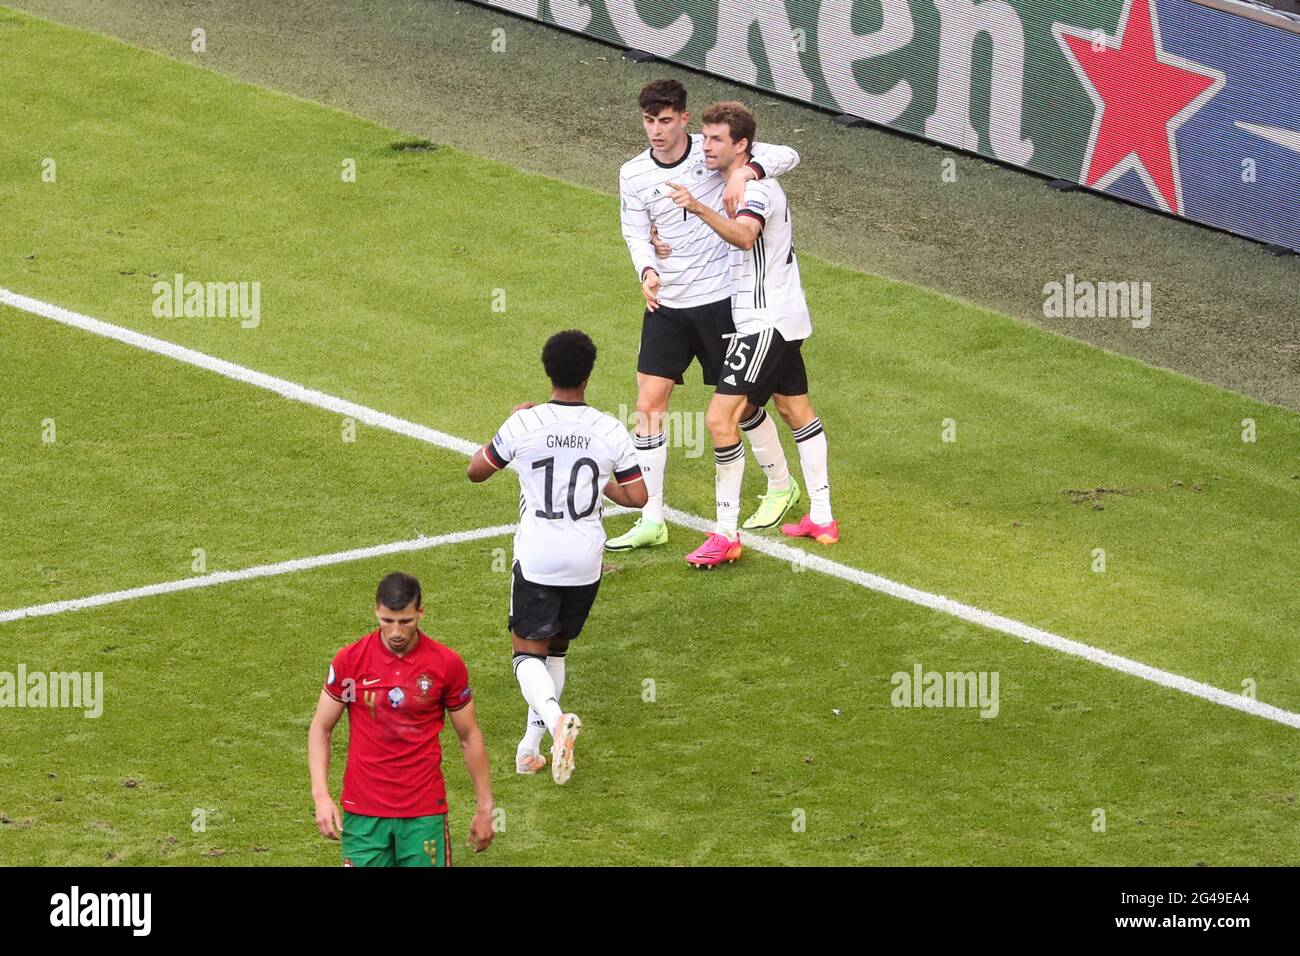 Munich, Germany. 19th June, 2021. Kai Havertz (2nd R) and Thomas Mueller (1st R) of Germany celebrate an own goal from Ruben Dias (1st L) of Portugal during the UEFA Euro 2020 Championship Group F match between Portugal and Germany in Munich, Germany, June 19, 2021. Credit: Shan Yuqi/Xinhua/Alamy Live News Stock Photo